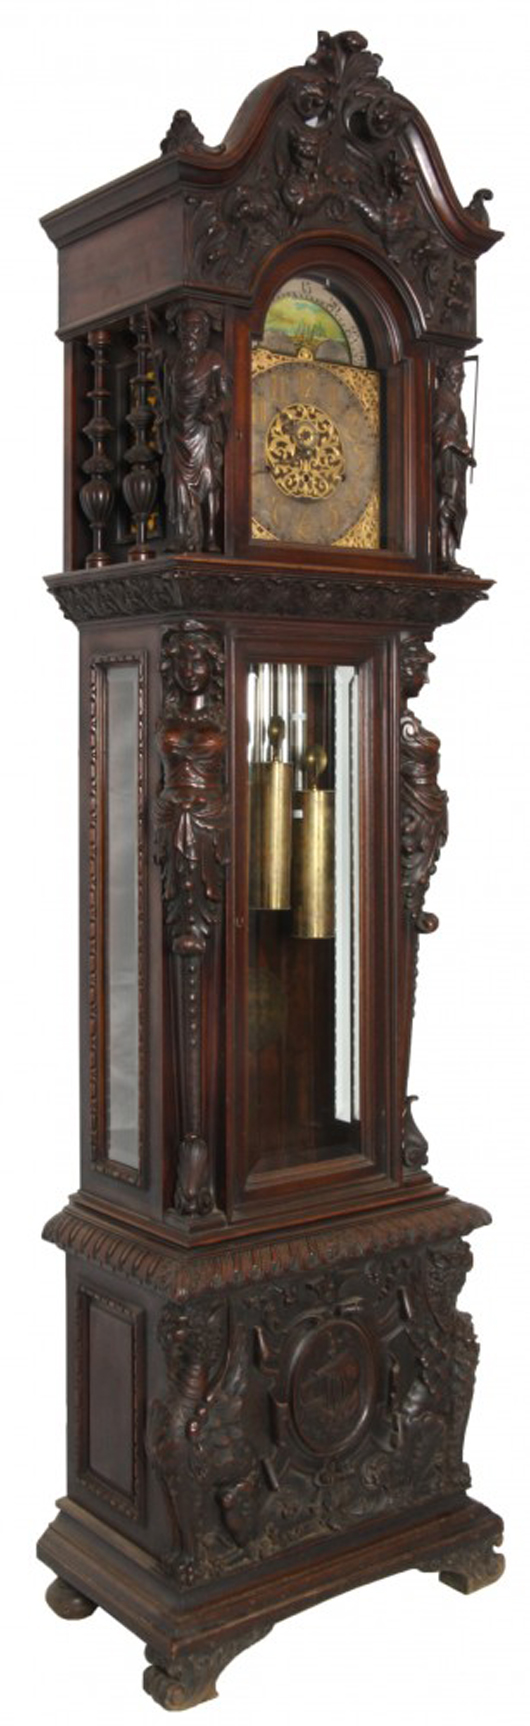 Figural carved mahogany nine-tube grandfather clock attributed to R.J. Horner, 107 inches tall (est. $40,000-$60,000). Fontaine's Auction Gallery image.